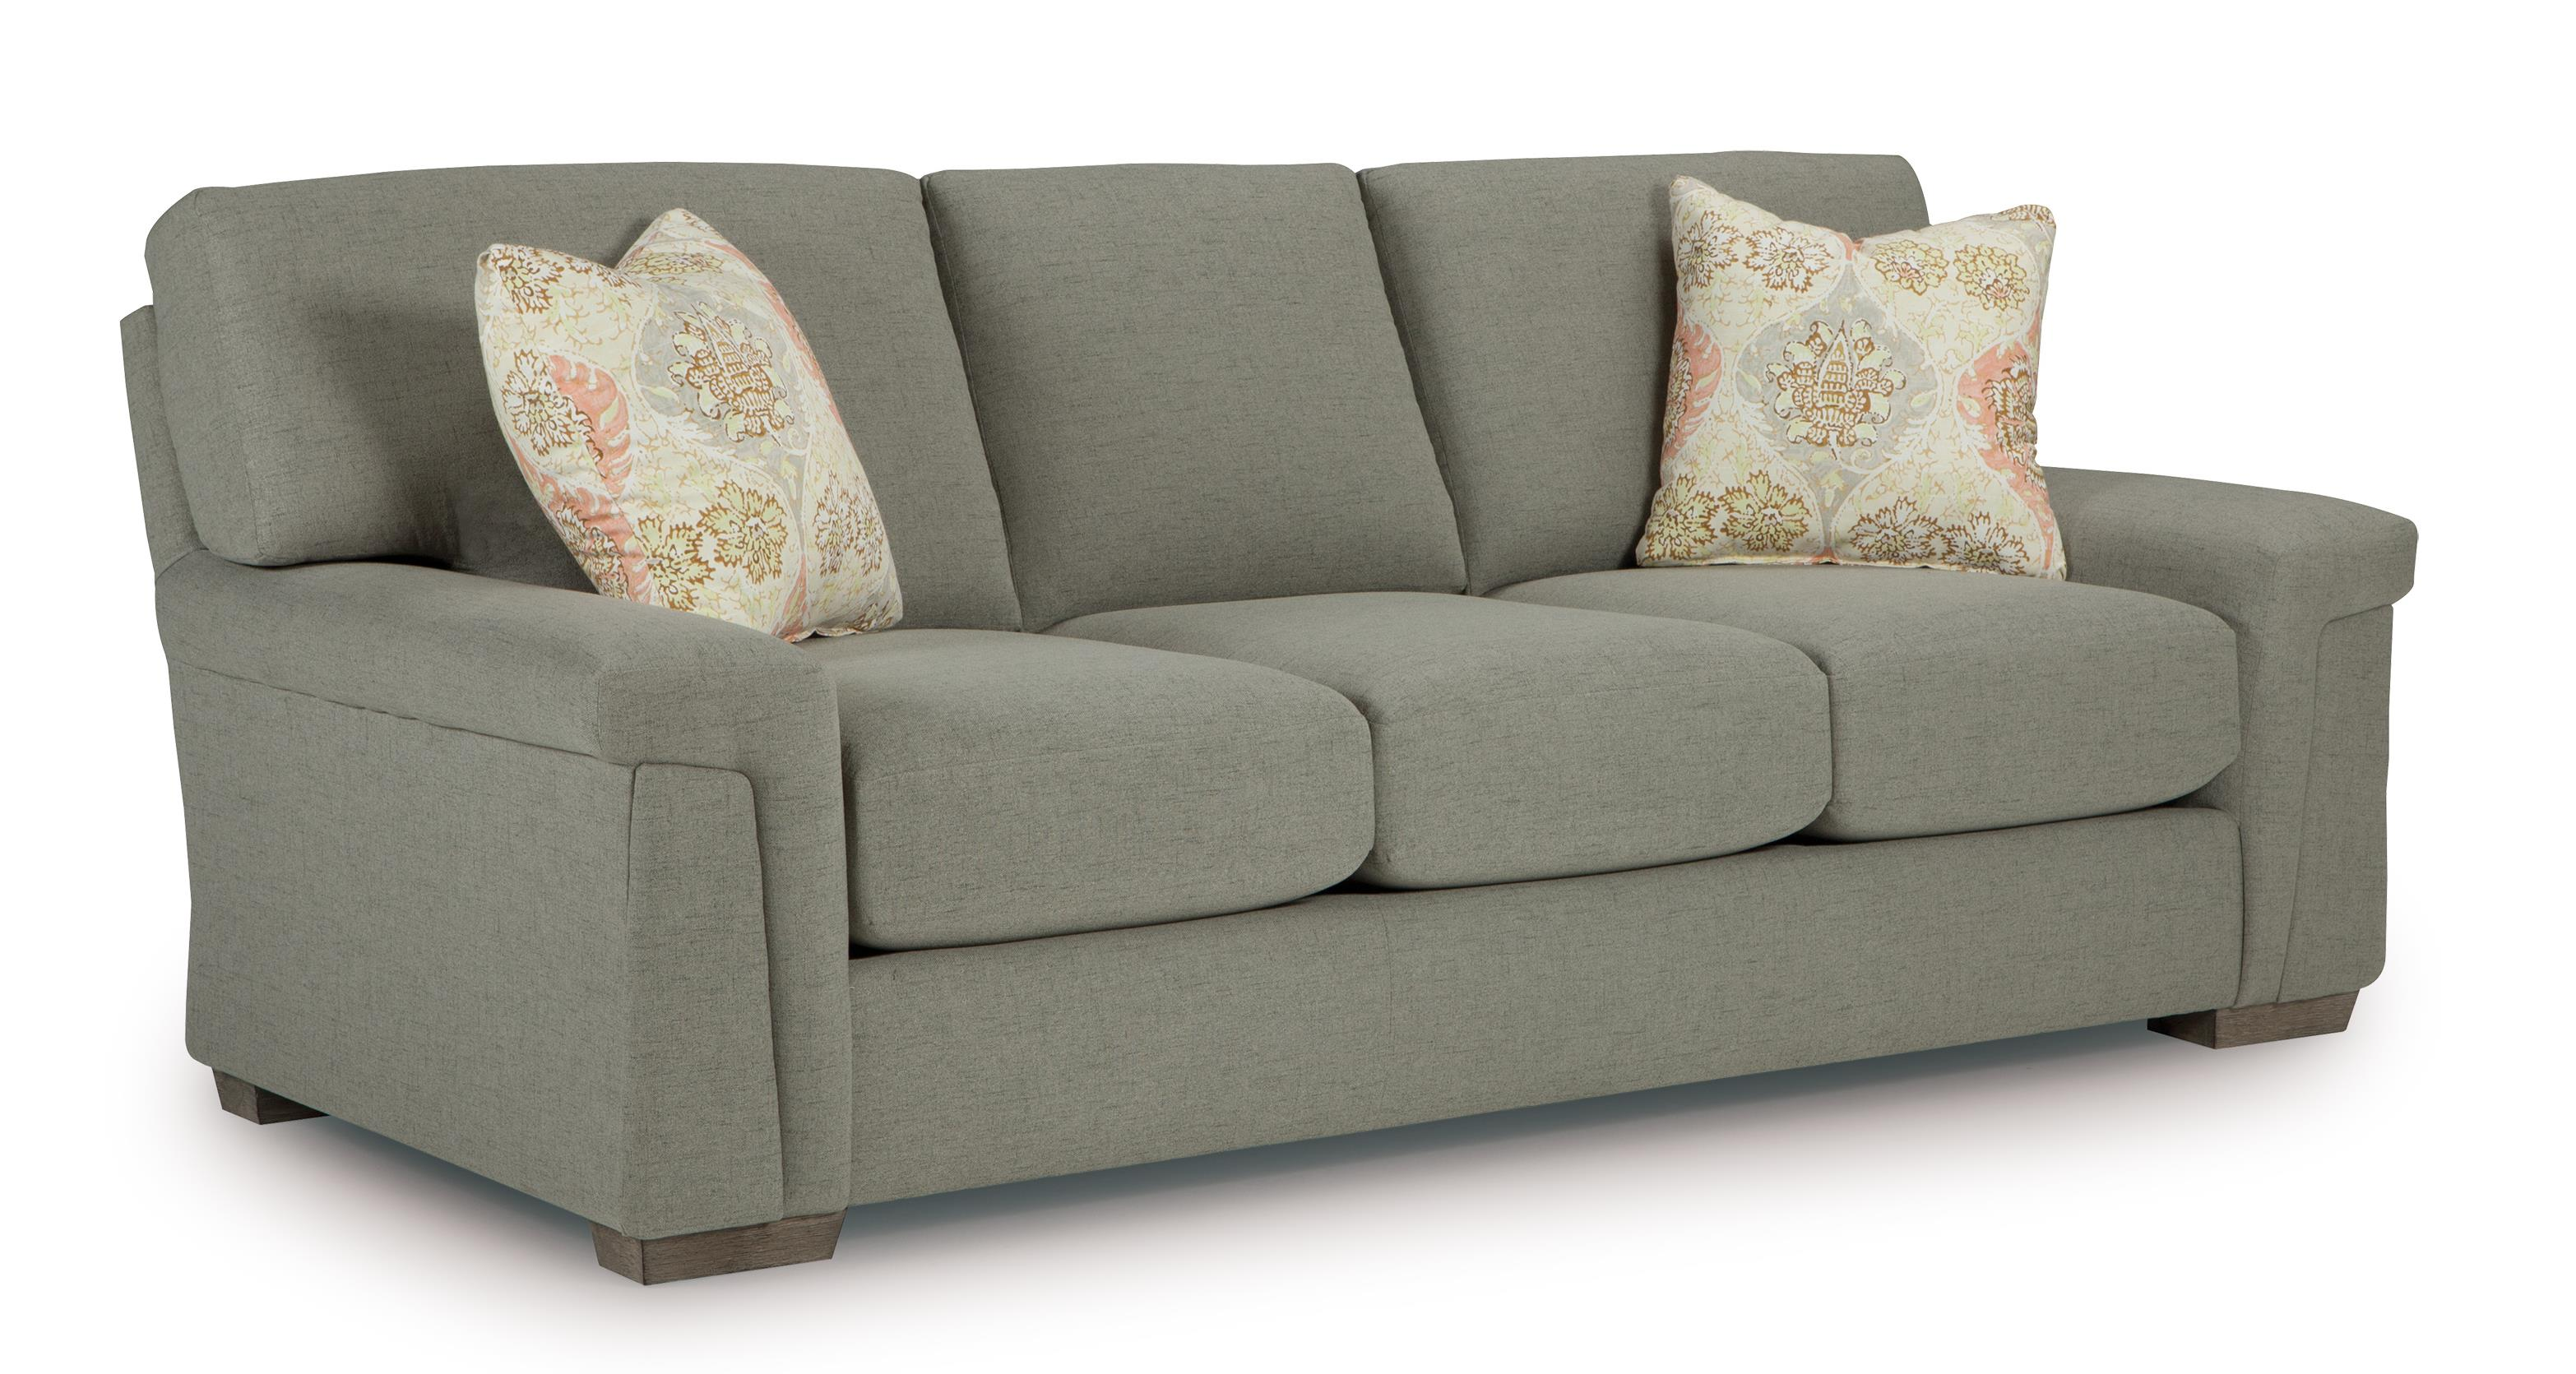 Best Home Furnishings Oliver Stationary Sofa - Item Number: S40-20653